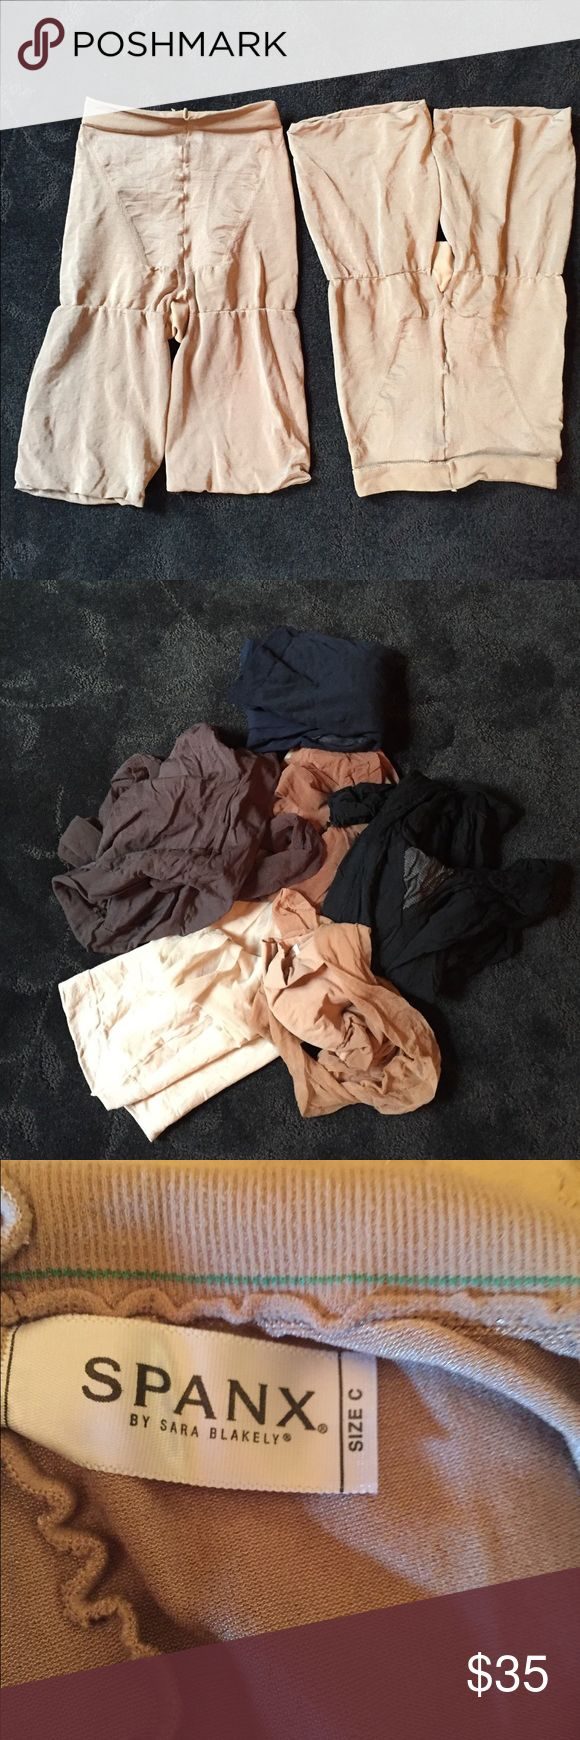 Spanx control bottoms/stockings 2 pairs of Spanx control bottoms, 2 pairs of Spanx stockings (1-Beige, 1-black) plus 6 more panty hose, Hanes Silky Sheer & Liz Claiborne. All Spanx size C others size large. Great bundle for professional lady. SPANX Intimates & Sleepwear Shapewear